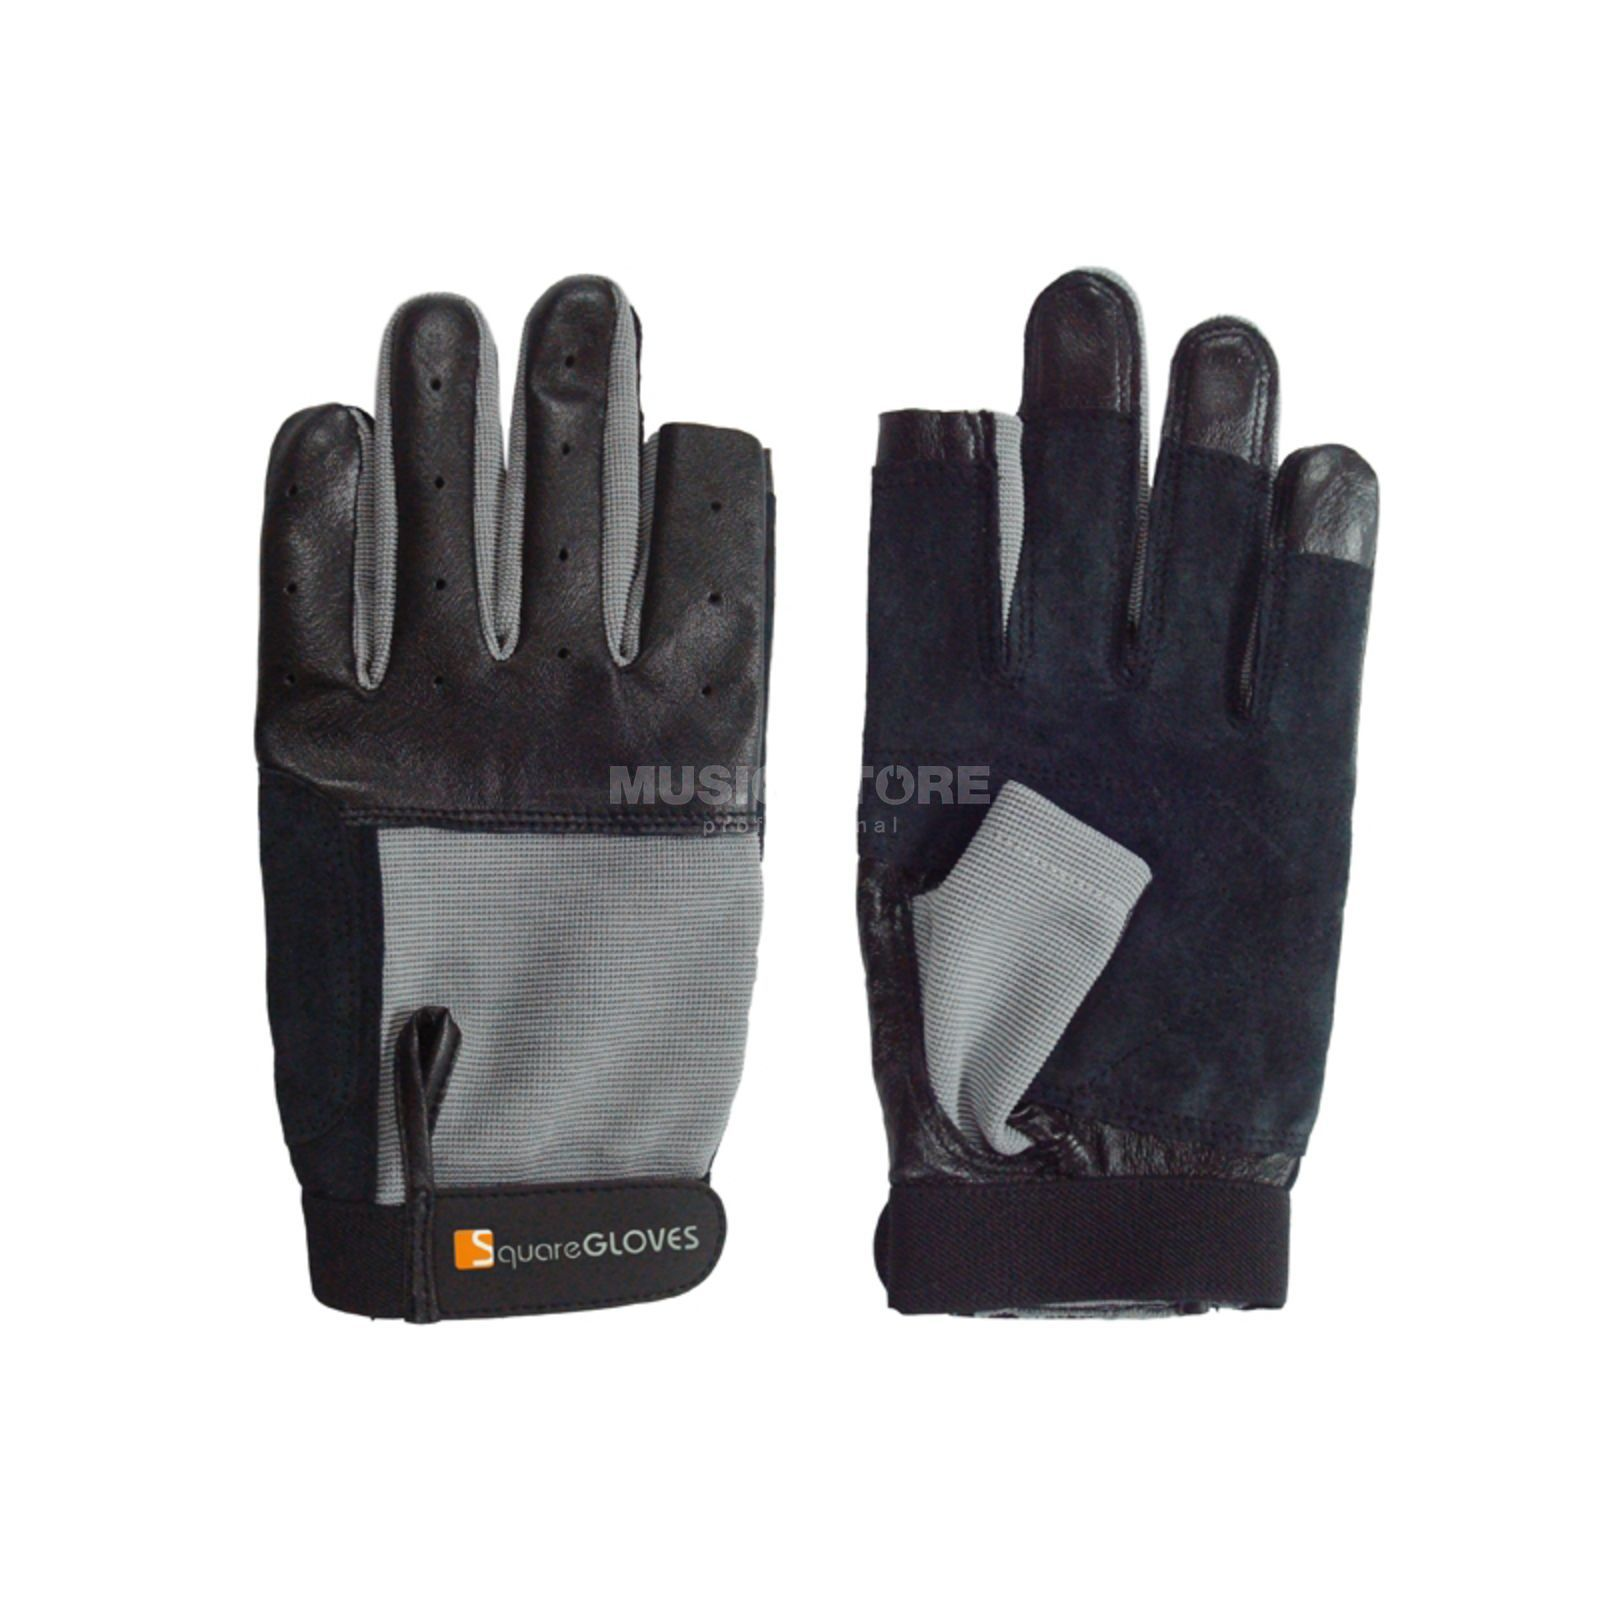 Global Truss Rigger Gloves black Size M Produktbillede